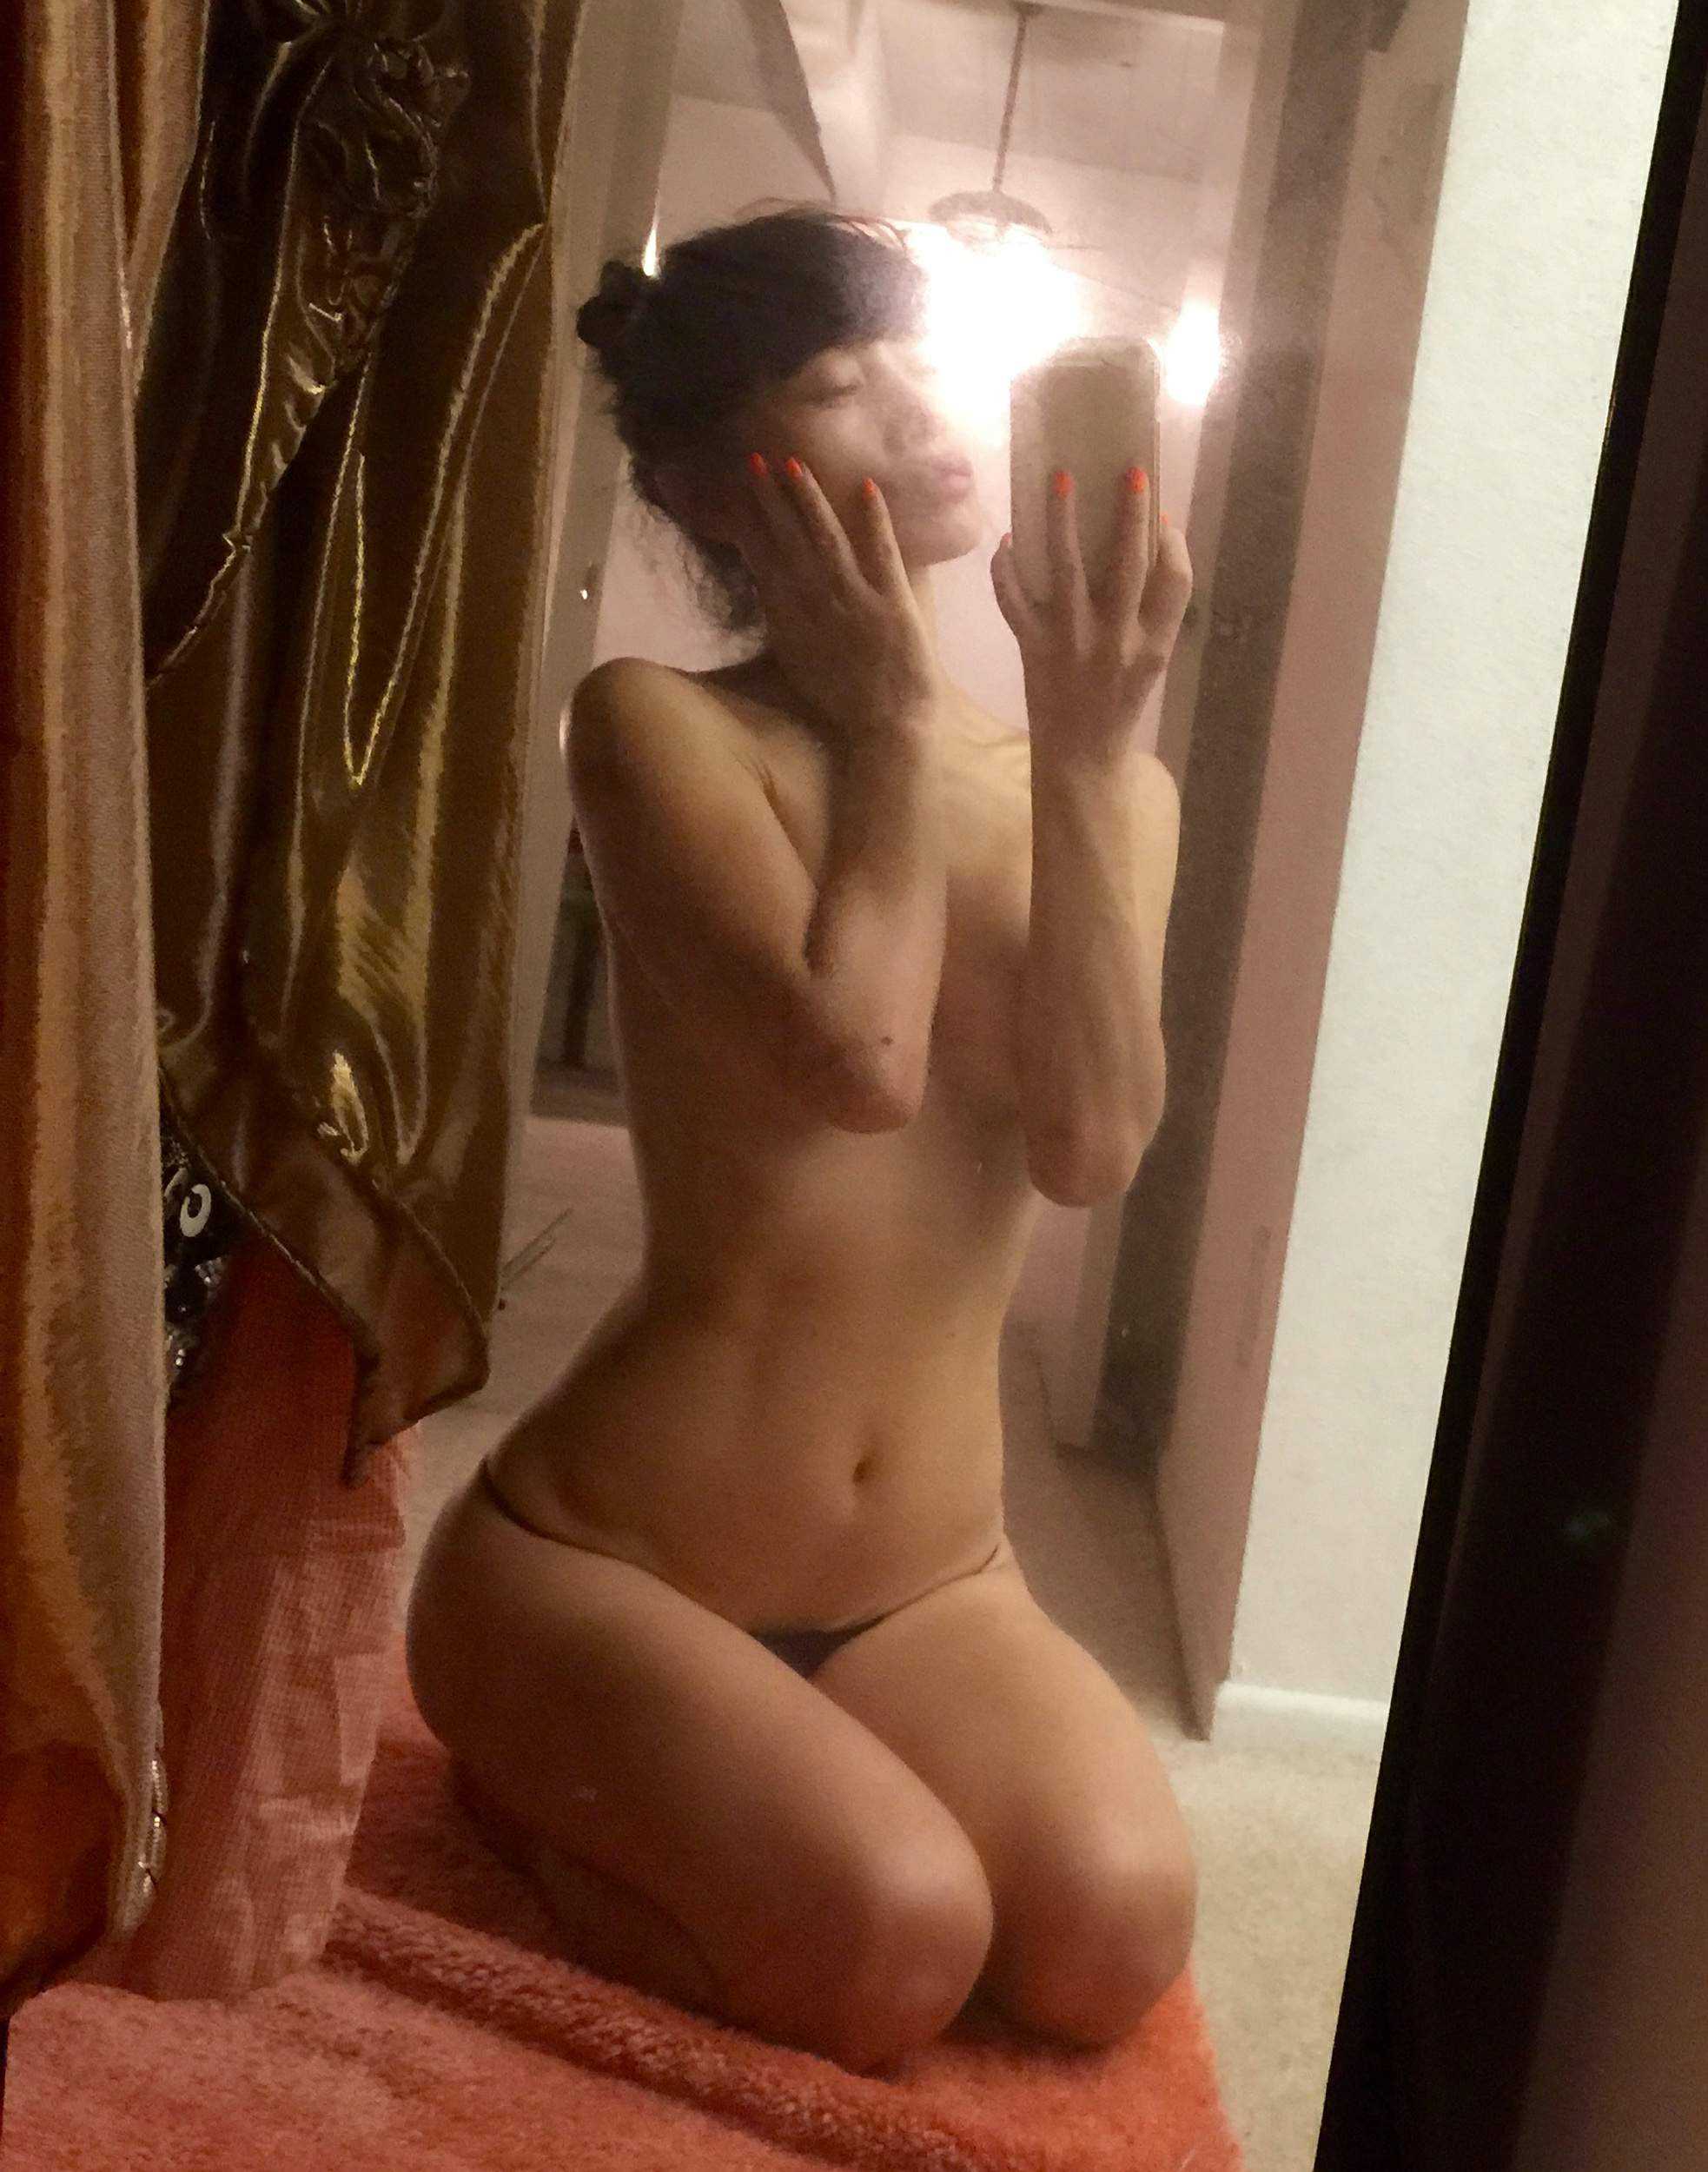 Bai Ling Naked 12 TheFappening.nu